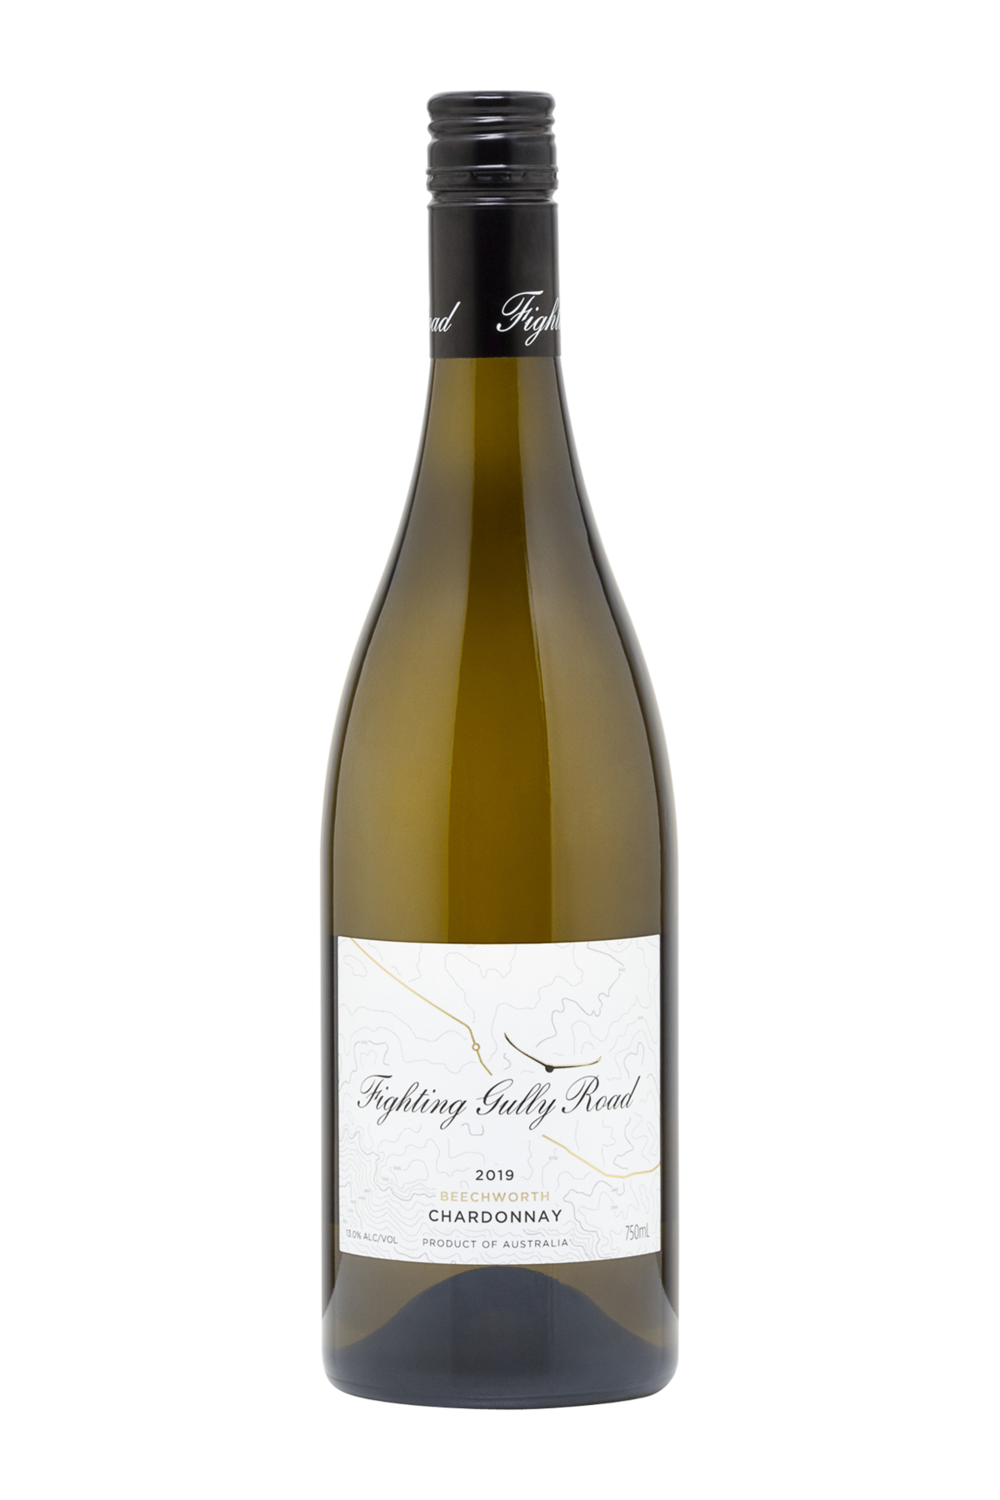 2019 Fighting Gully Road Chardonnay, Beechworth